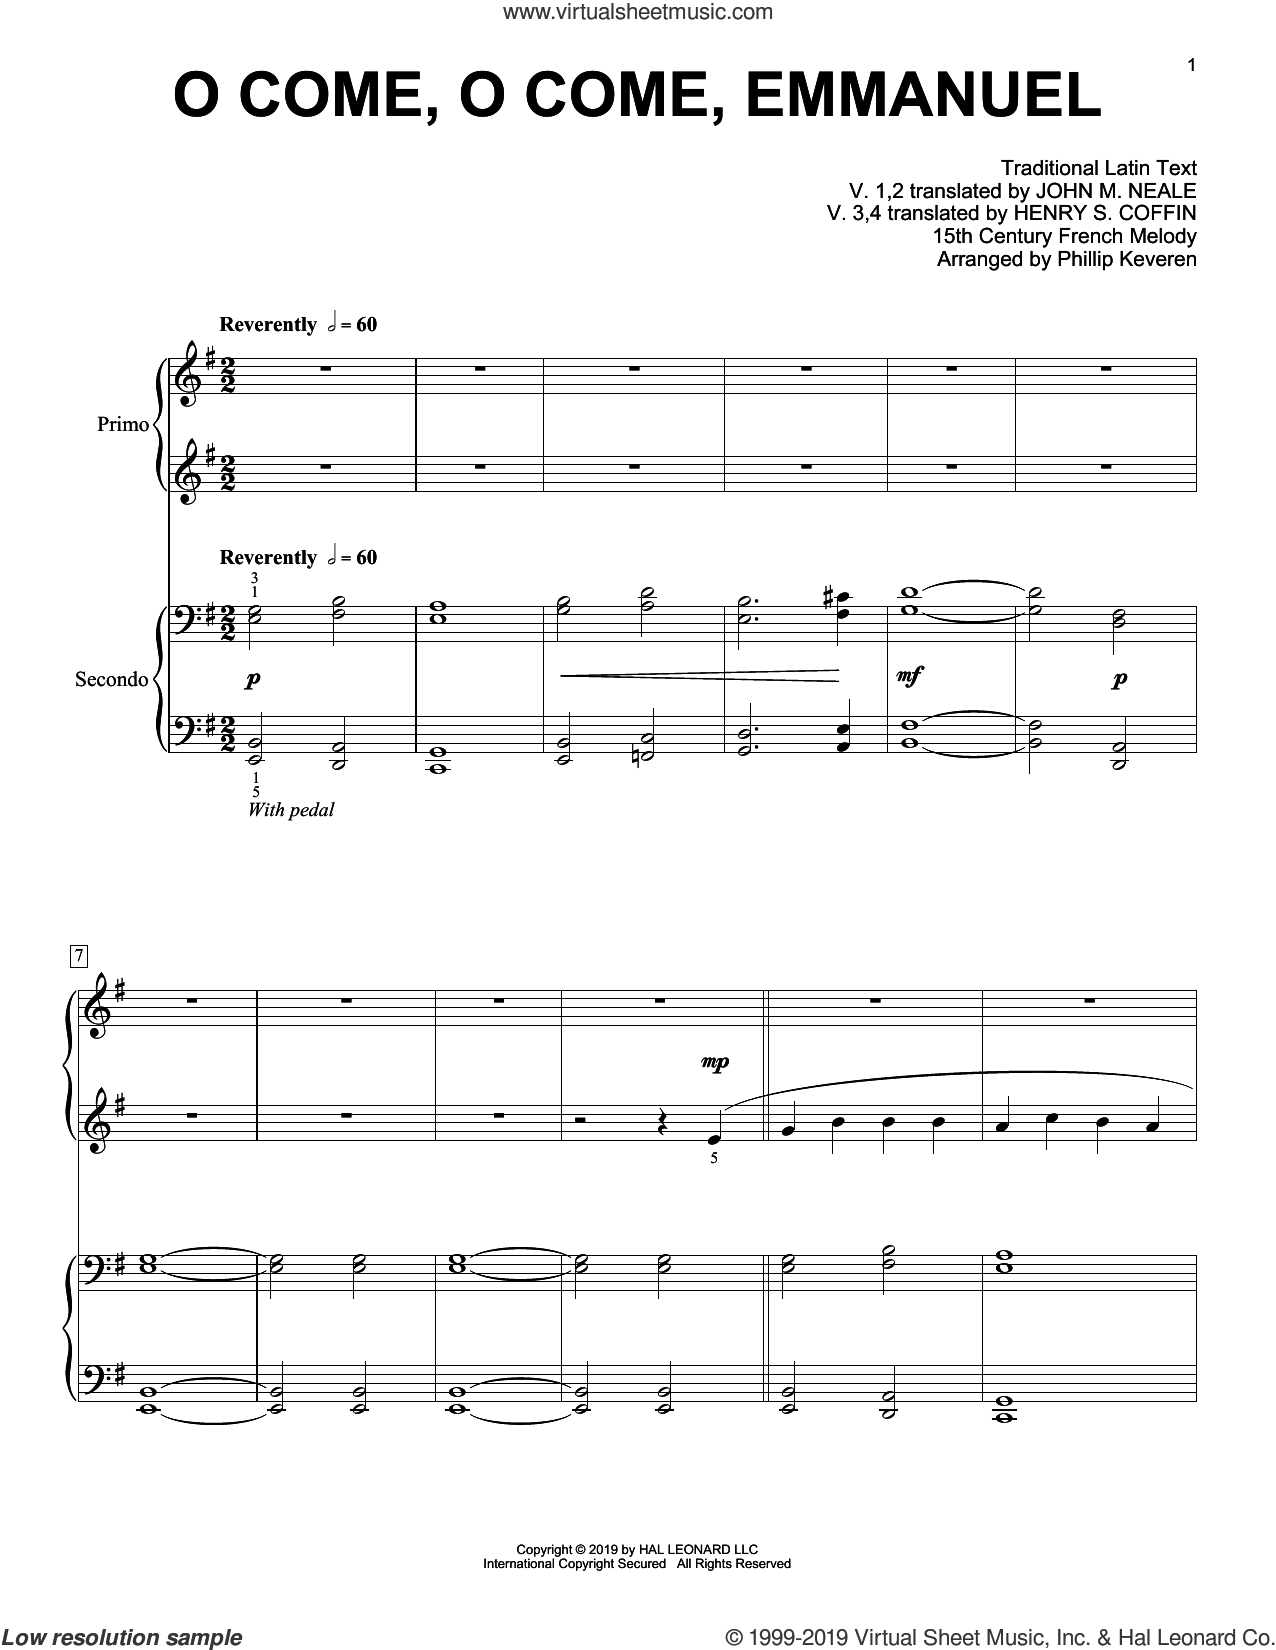 O Come, O Come, Emmanuel (arr. Phillip Keveren) sheet music for piano four hands by John M. Neale (v. 1,2), Phillip Keveren, 15th Century French Melody, Henry S. Coffin (v. 3,4), Miscellaneous and Thomas Helmore, intermediate skill level